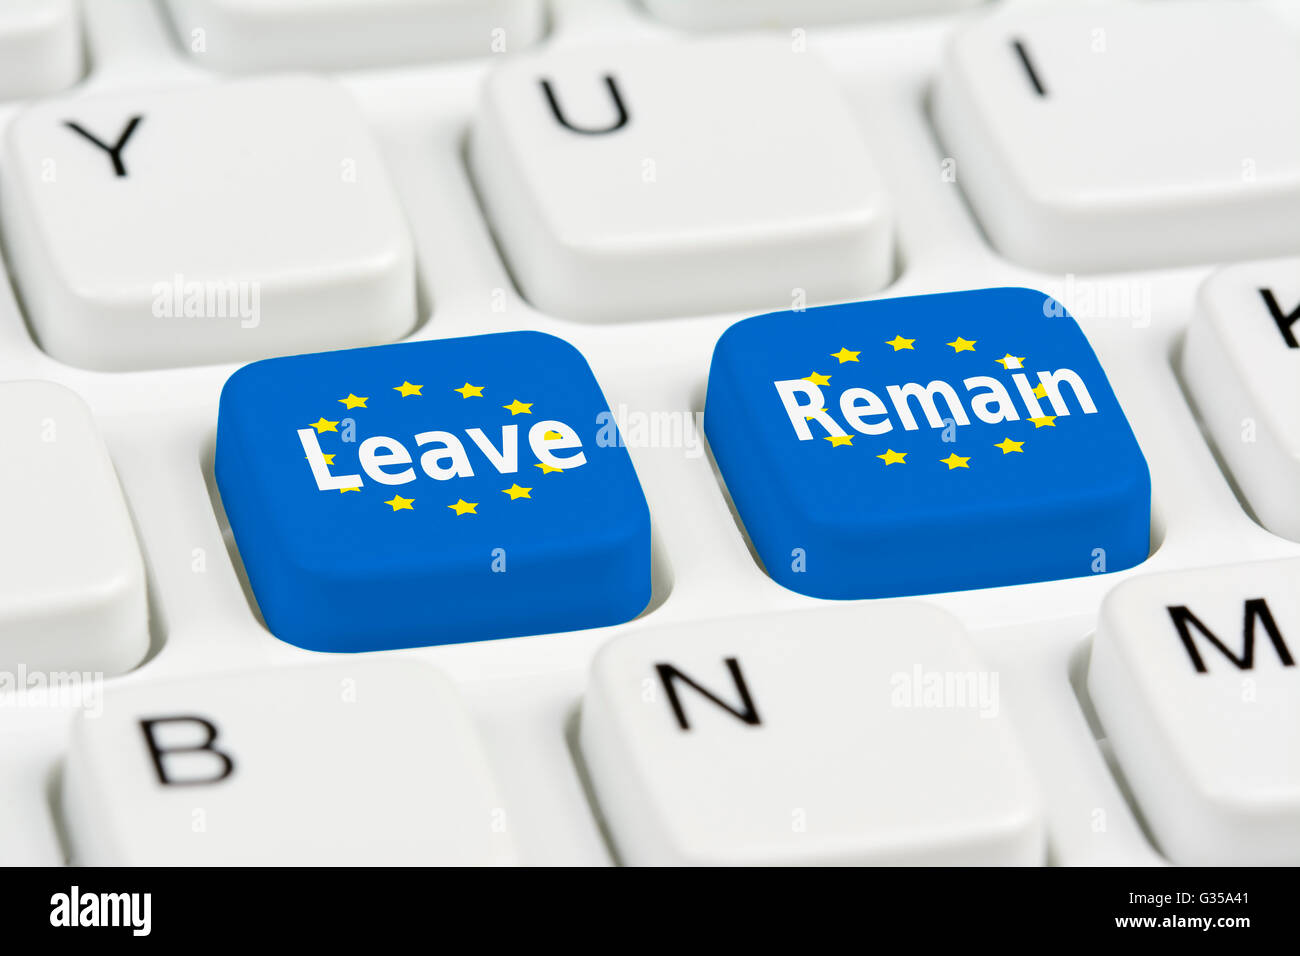 Brexit vote concept. EU Leave or Remain buttons on a computer keyboard. Brexit voting. EU referendum. European referendum. - Stock Image